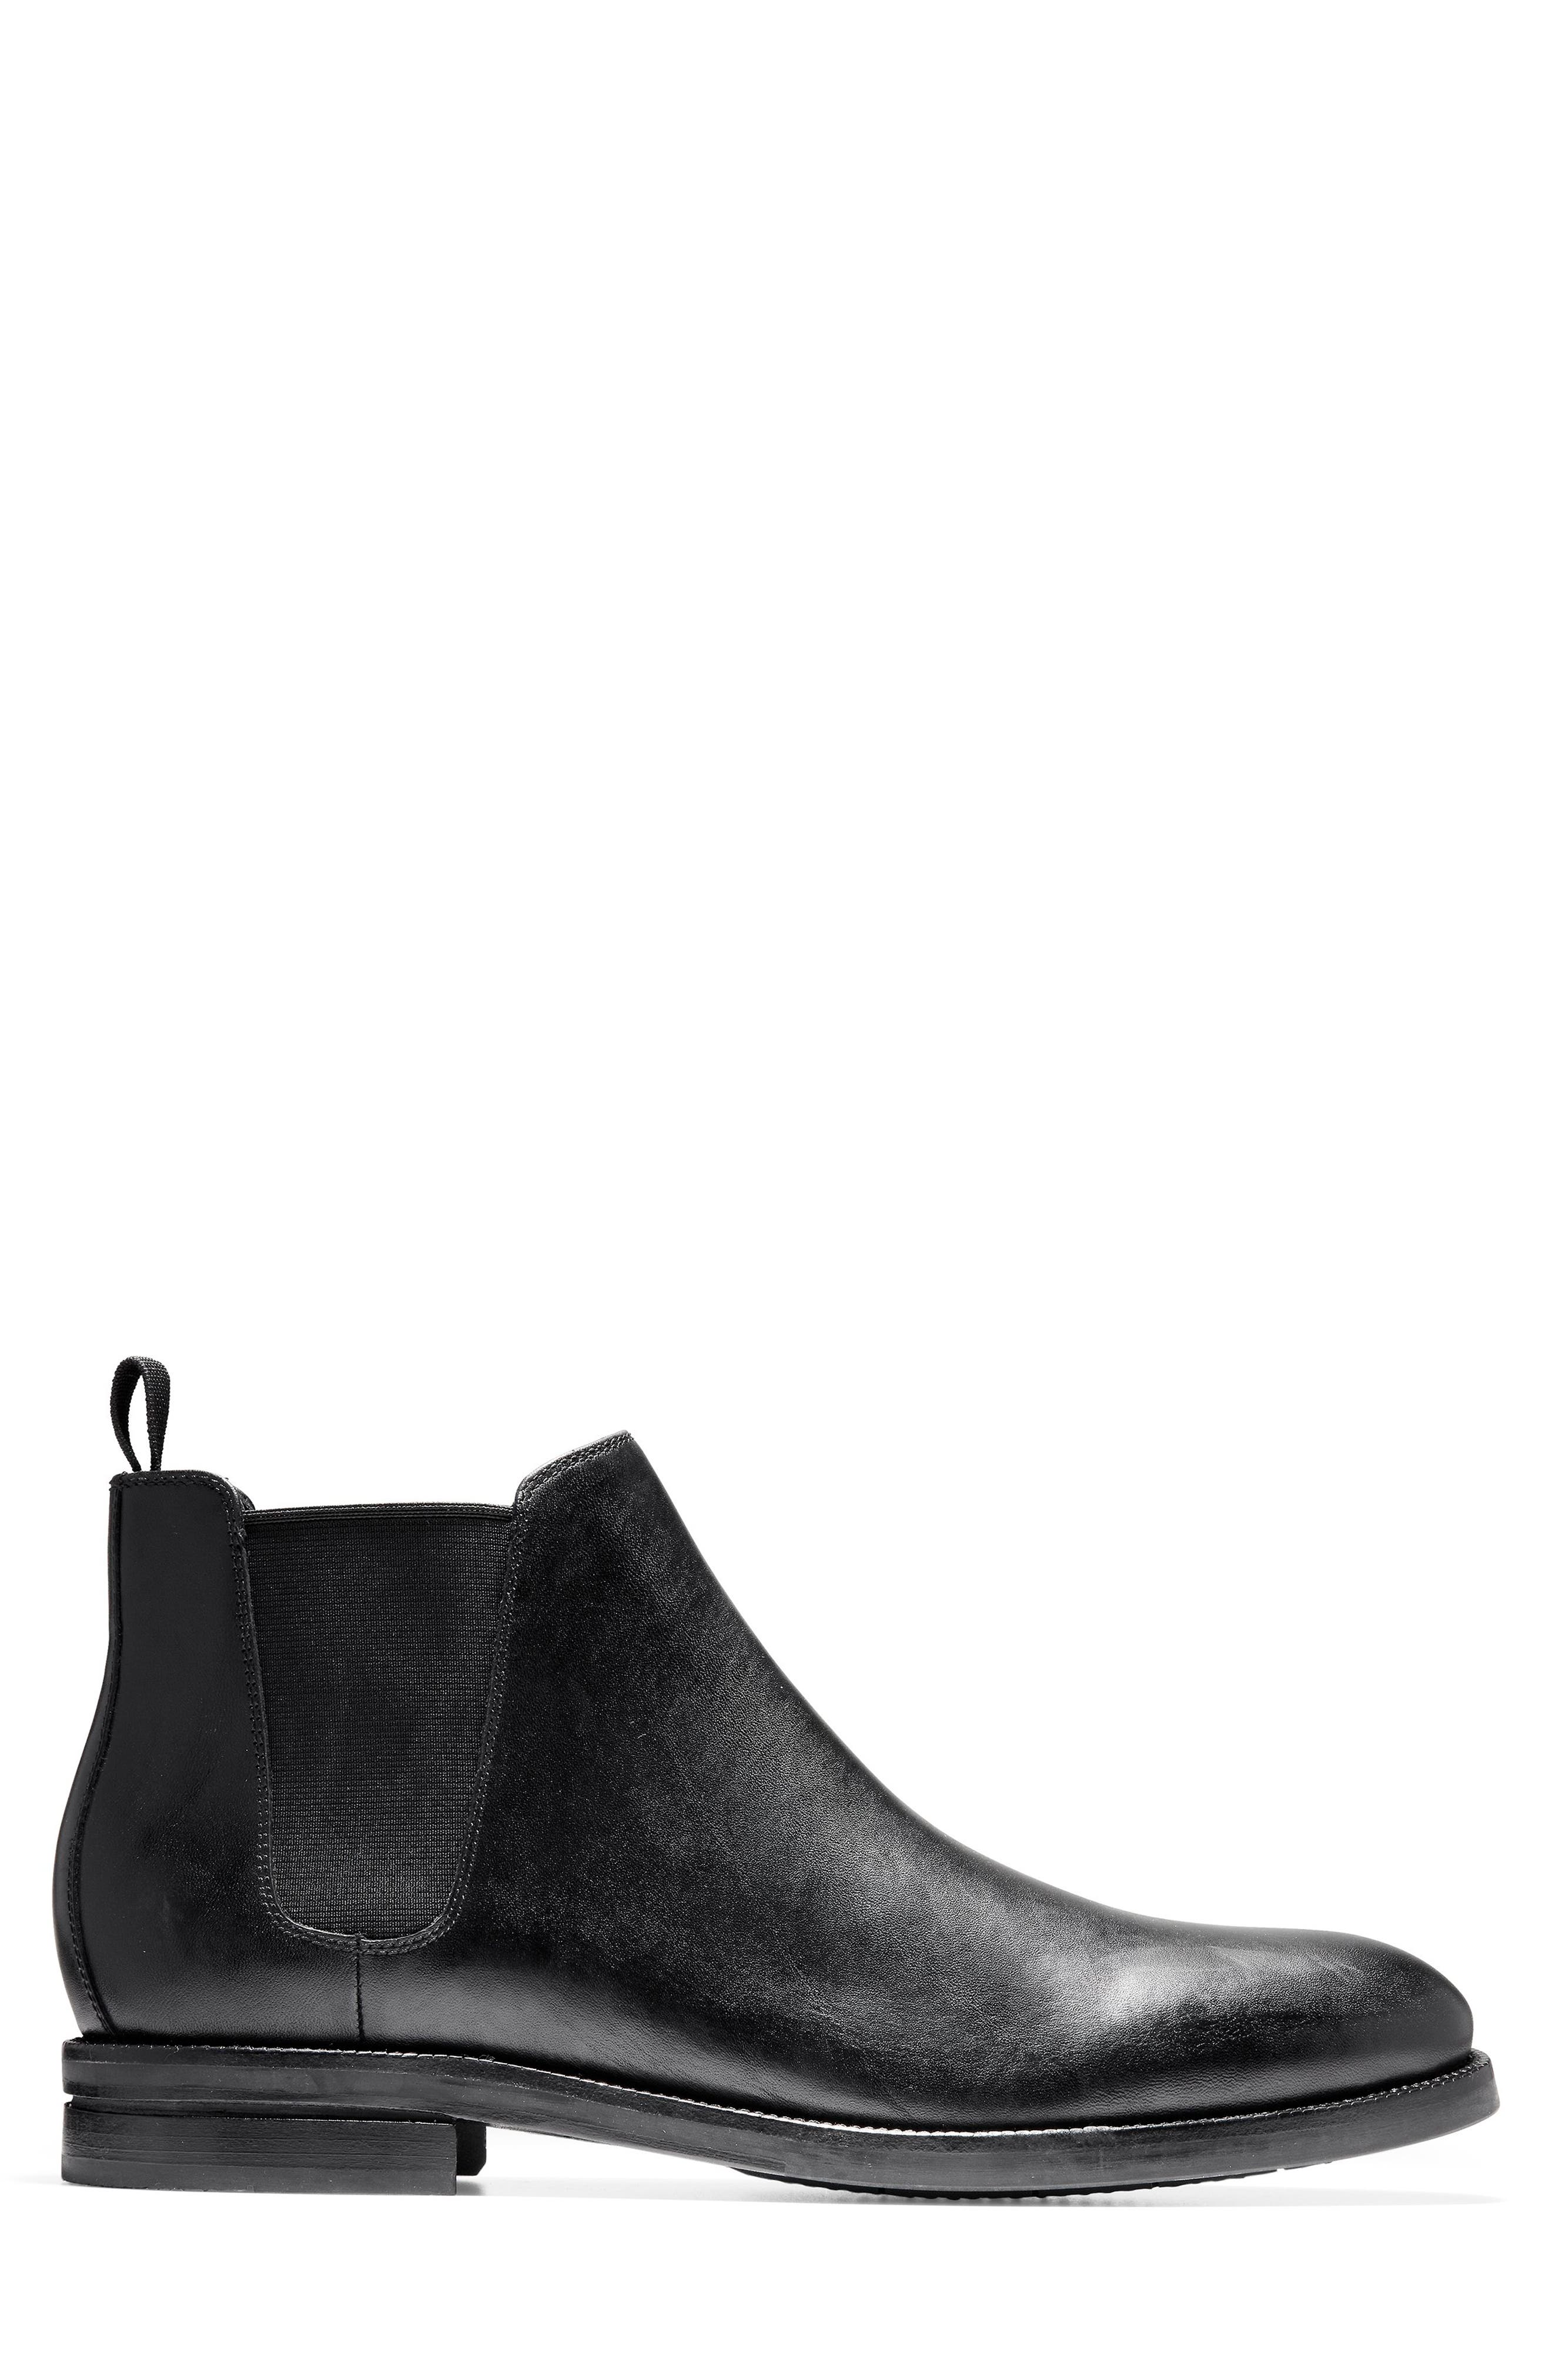 COLE HAAN, Wakefield Grand Chelsea Boot, Alternate thumbnail 2, color, BLACK LEATHER